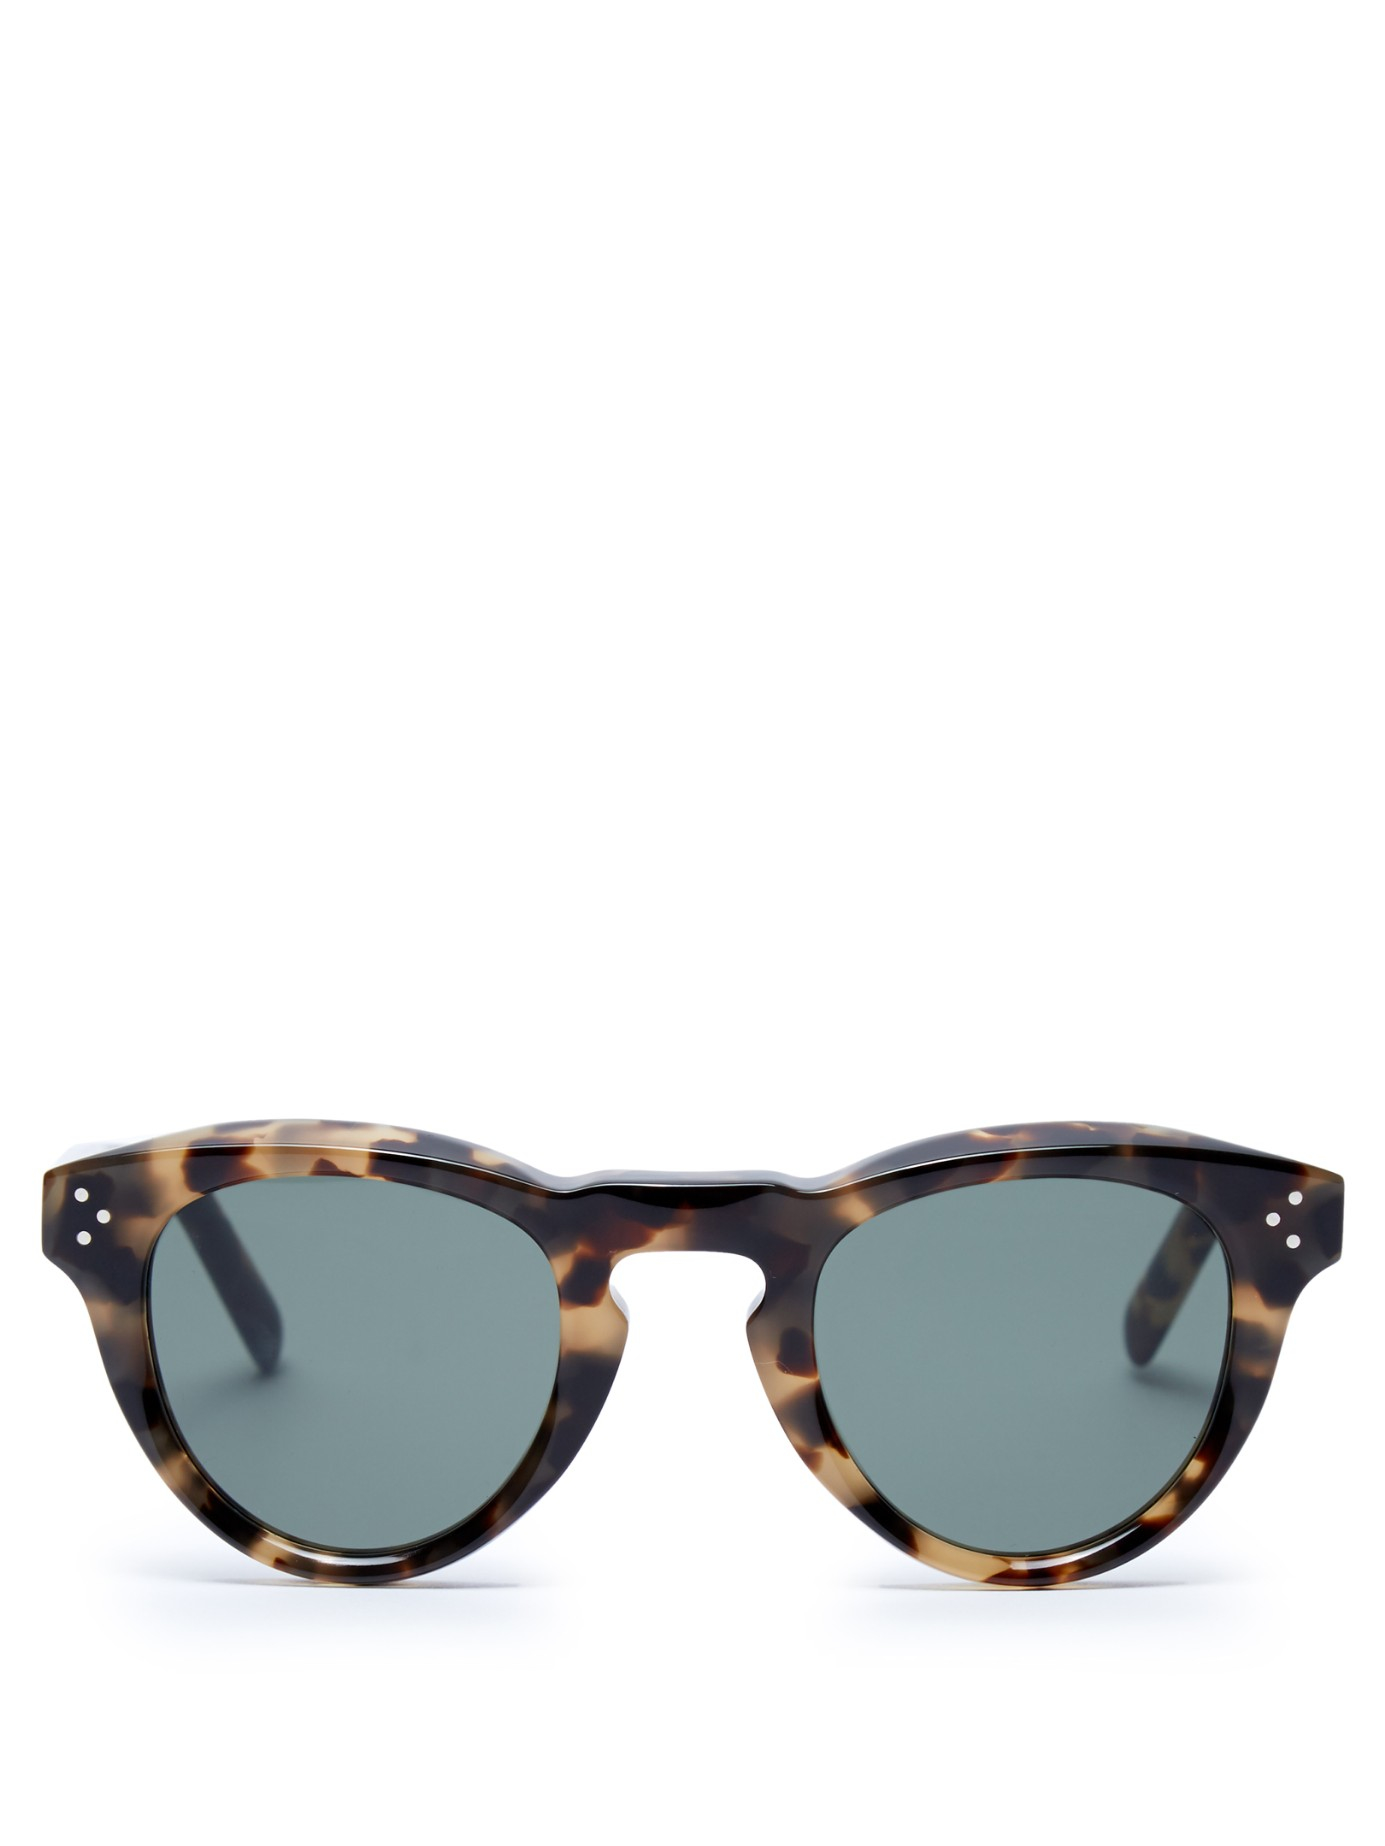 Celine Gold Frame Sunglasses : Celine Round-frame Acetate Sunglasses in Brown Lyst